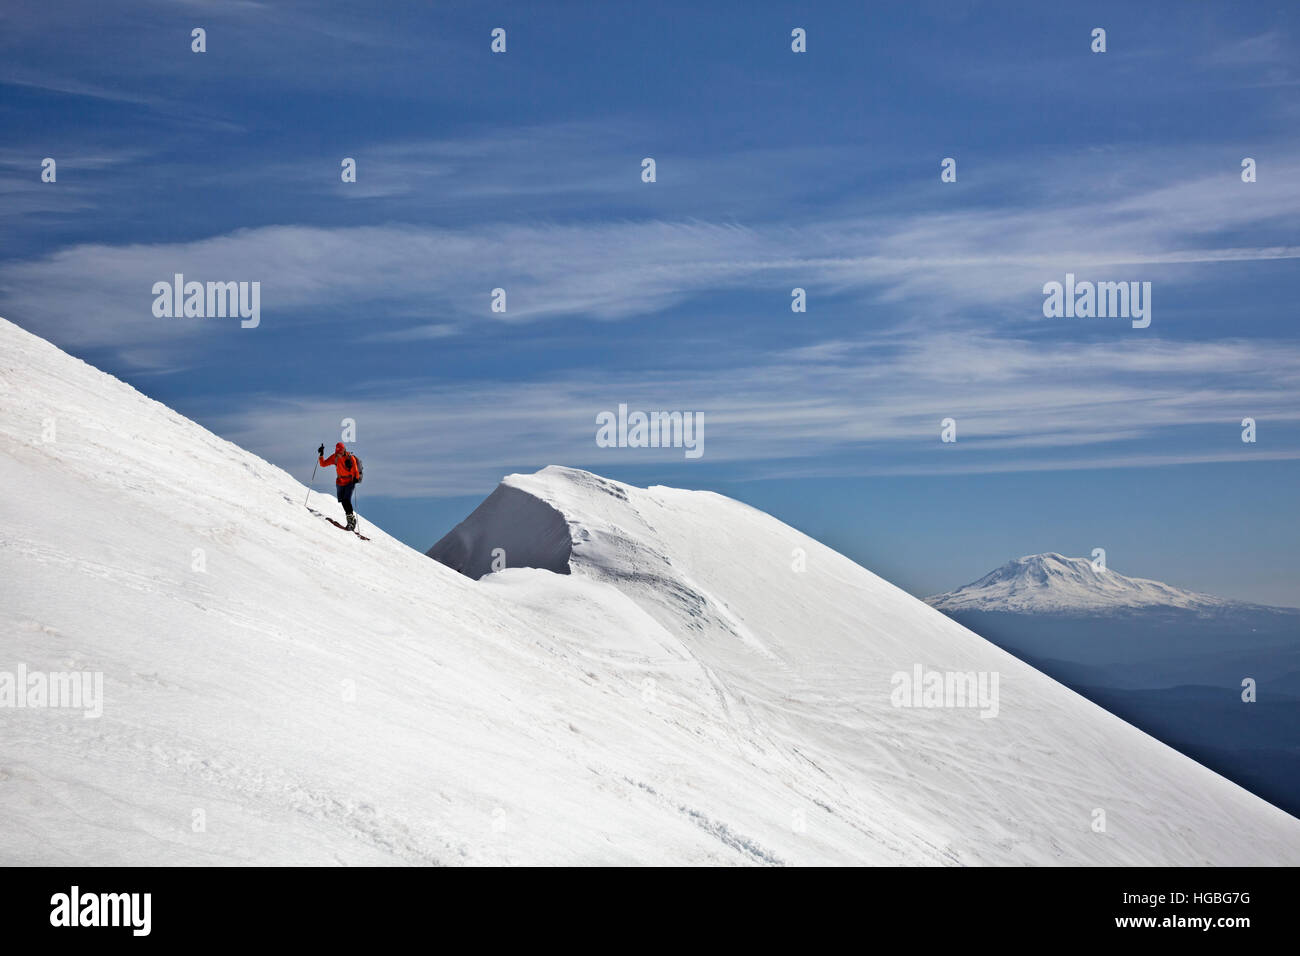 WA13127-00...WASHINGTON - Skiing the the rim of the crater on the summit of Mount St. Helens with Mount Adams in - Stock Image